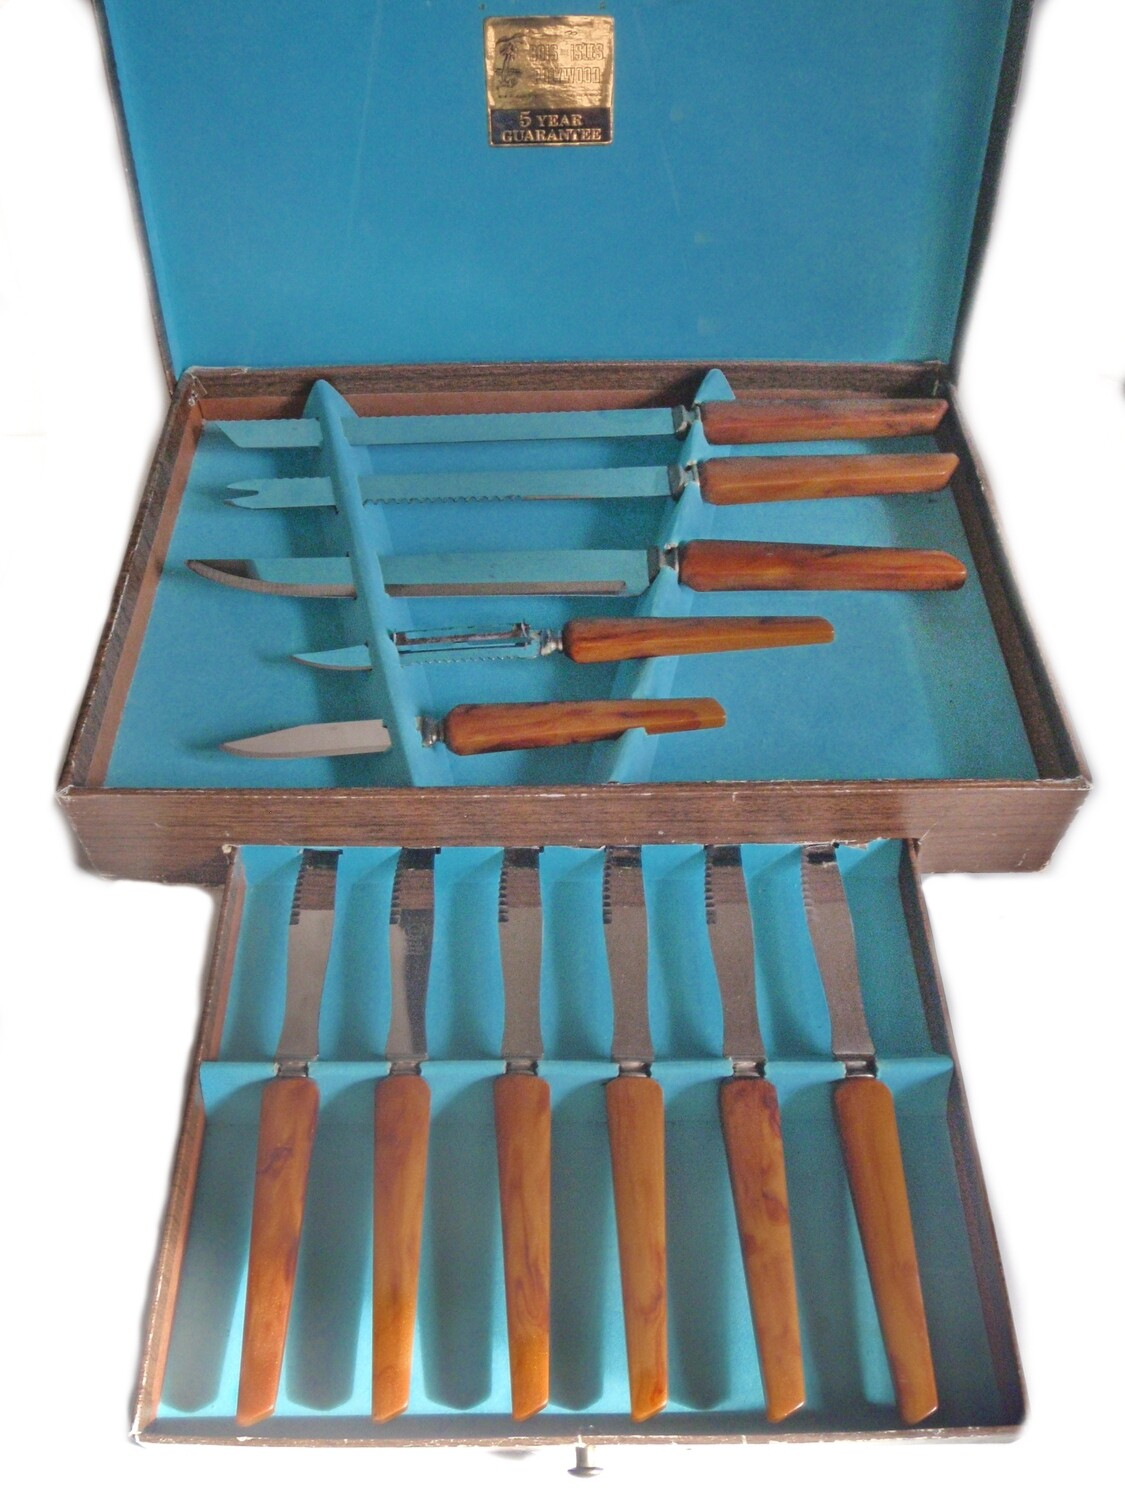 11pc Sheffield Steel Polywood Carving Set and 6 Steak Knives